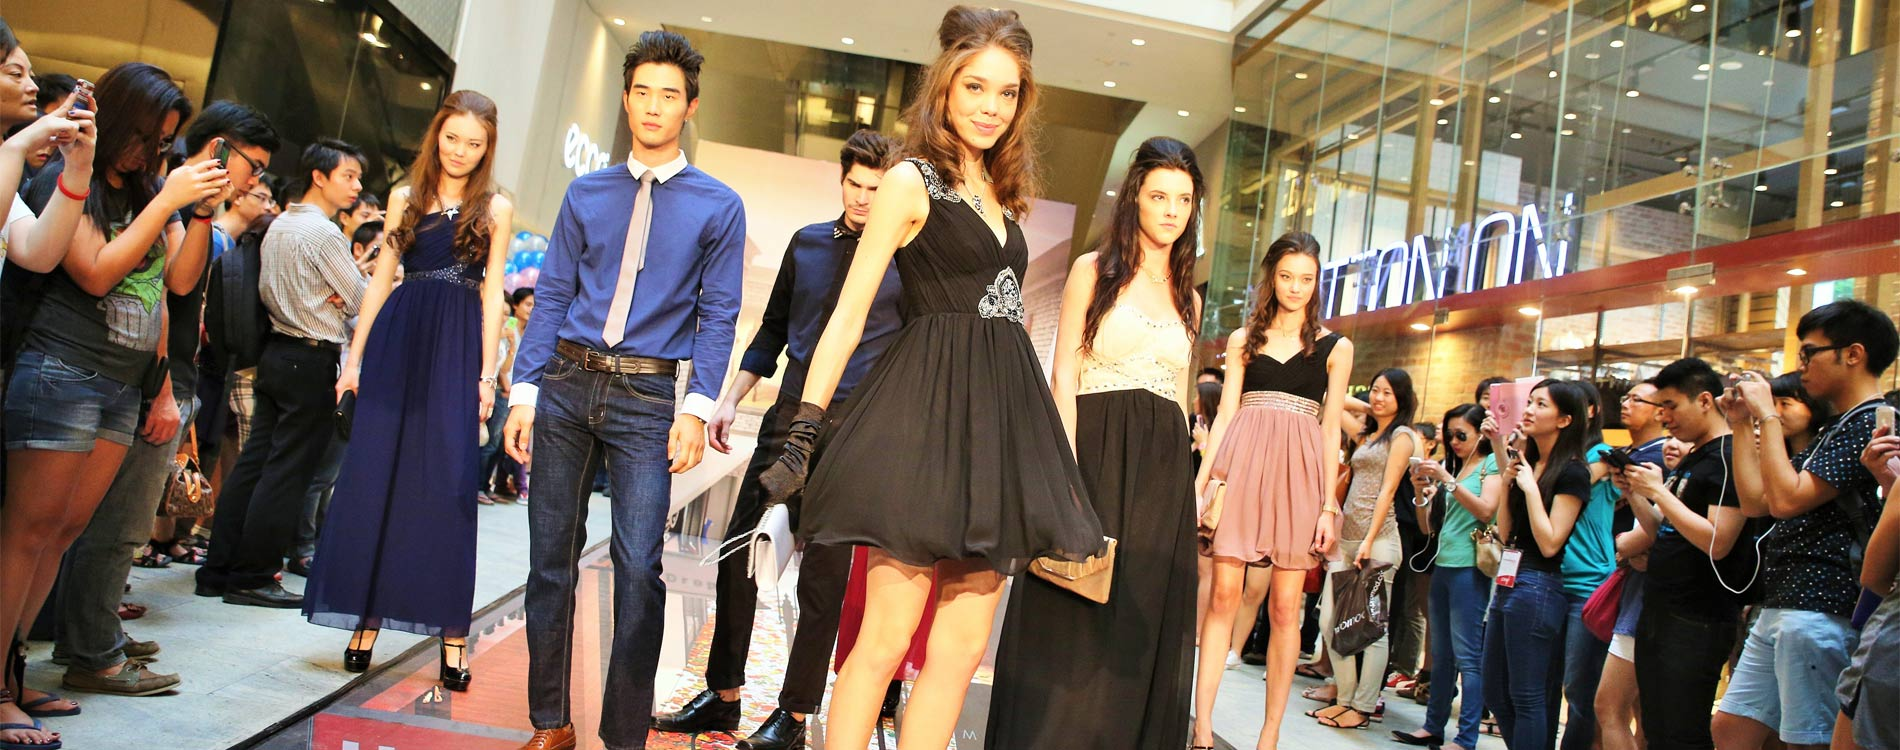 Singapore Events Management Company and Arts Fashion Music Singapore